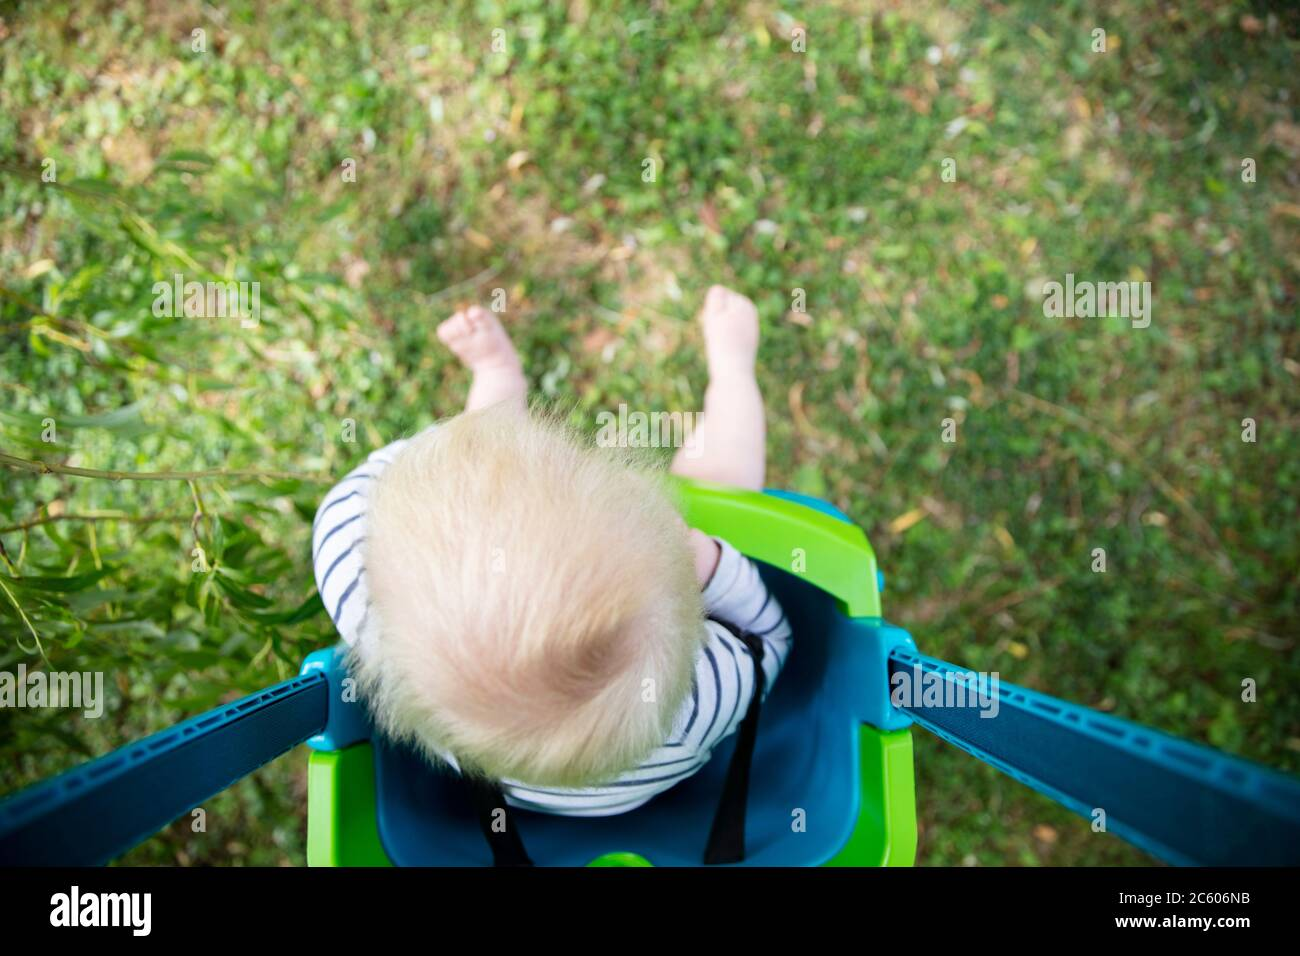 A little boy having fun playing on a swing under a tree in a garden Stock Photo